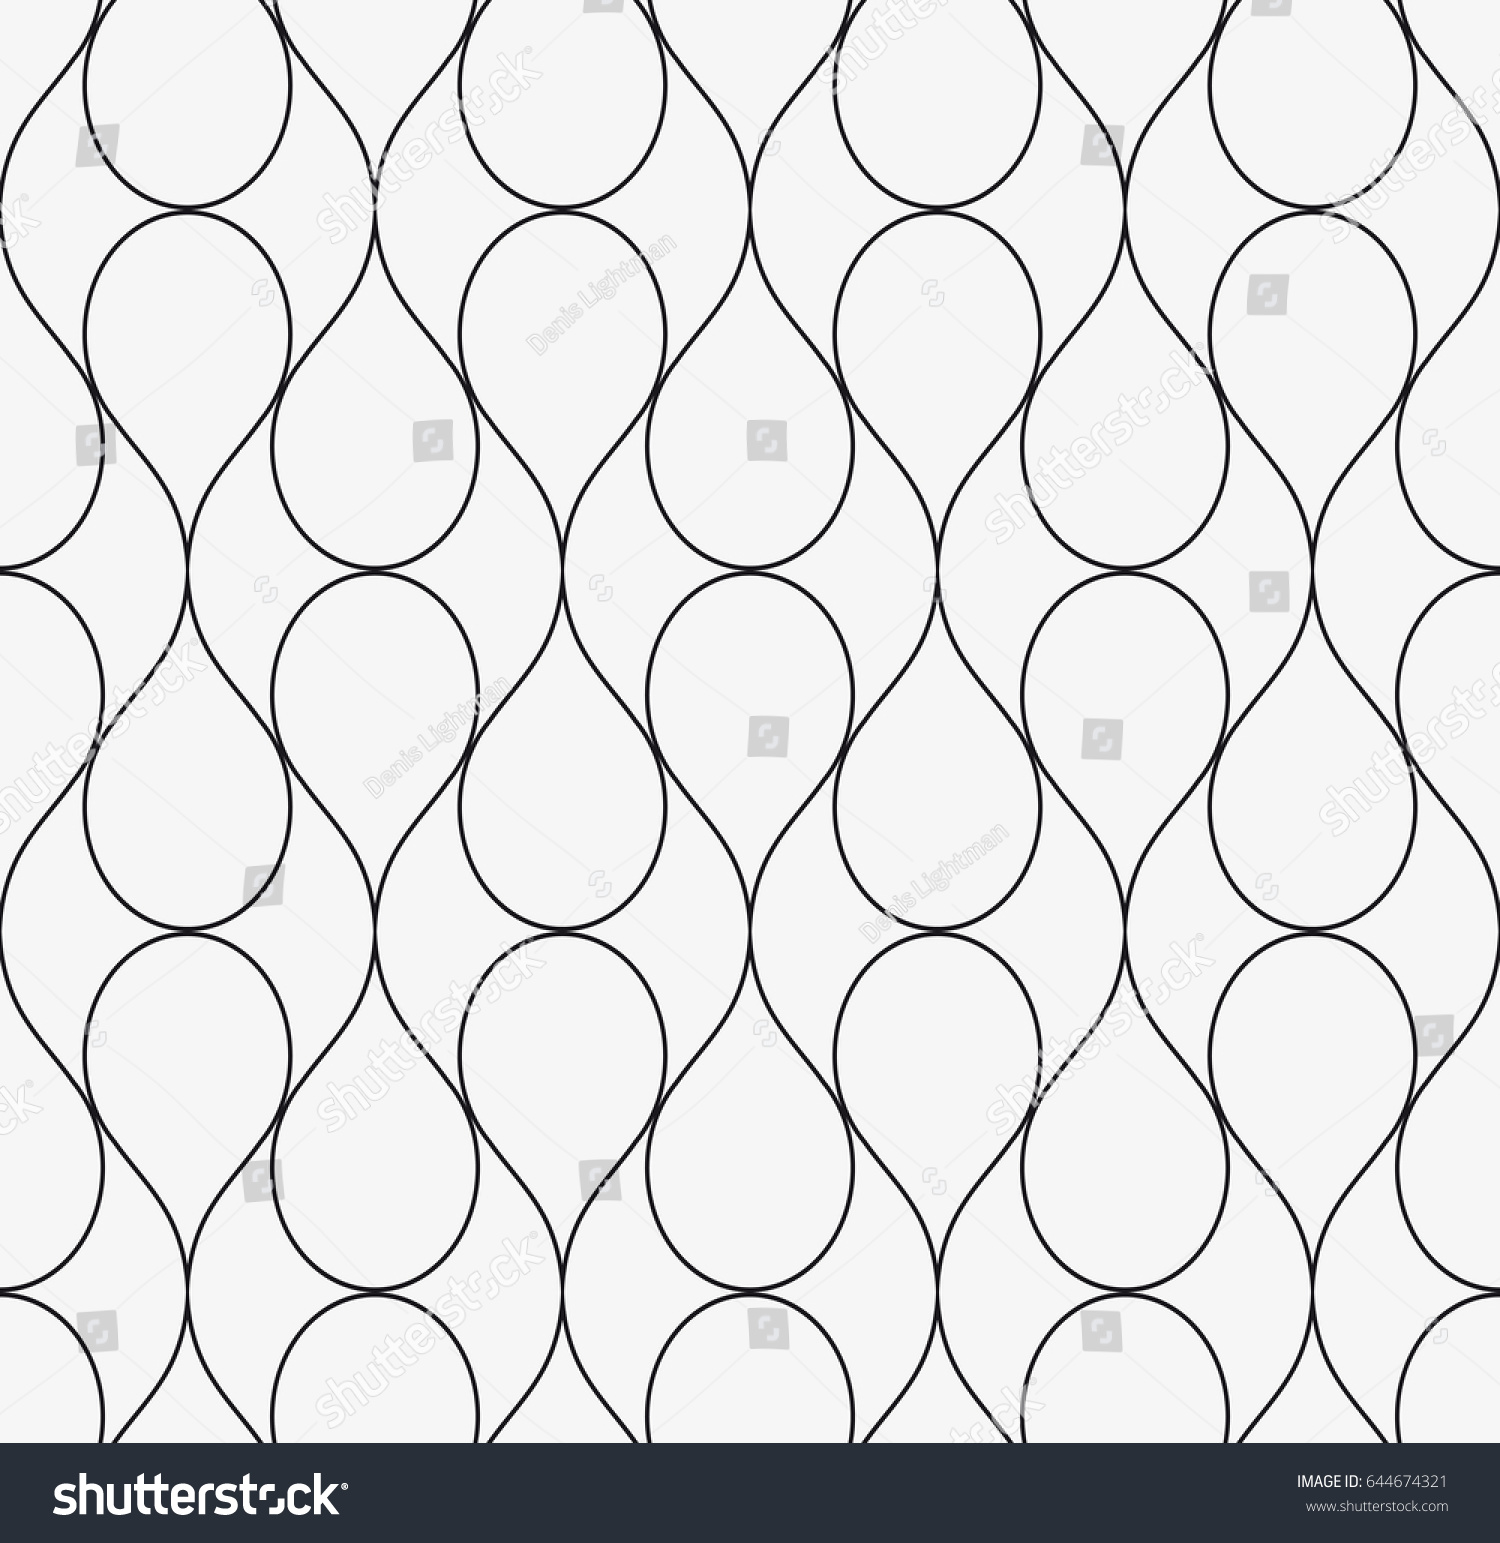 Vector seamless pattern. Modern stylish texture. Repetition of geometric tiles with an abstract mesh of drops.